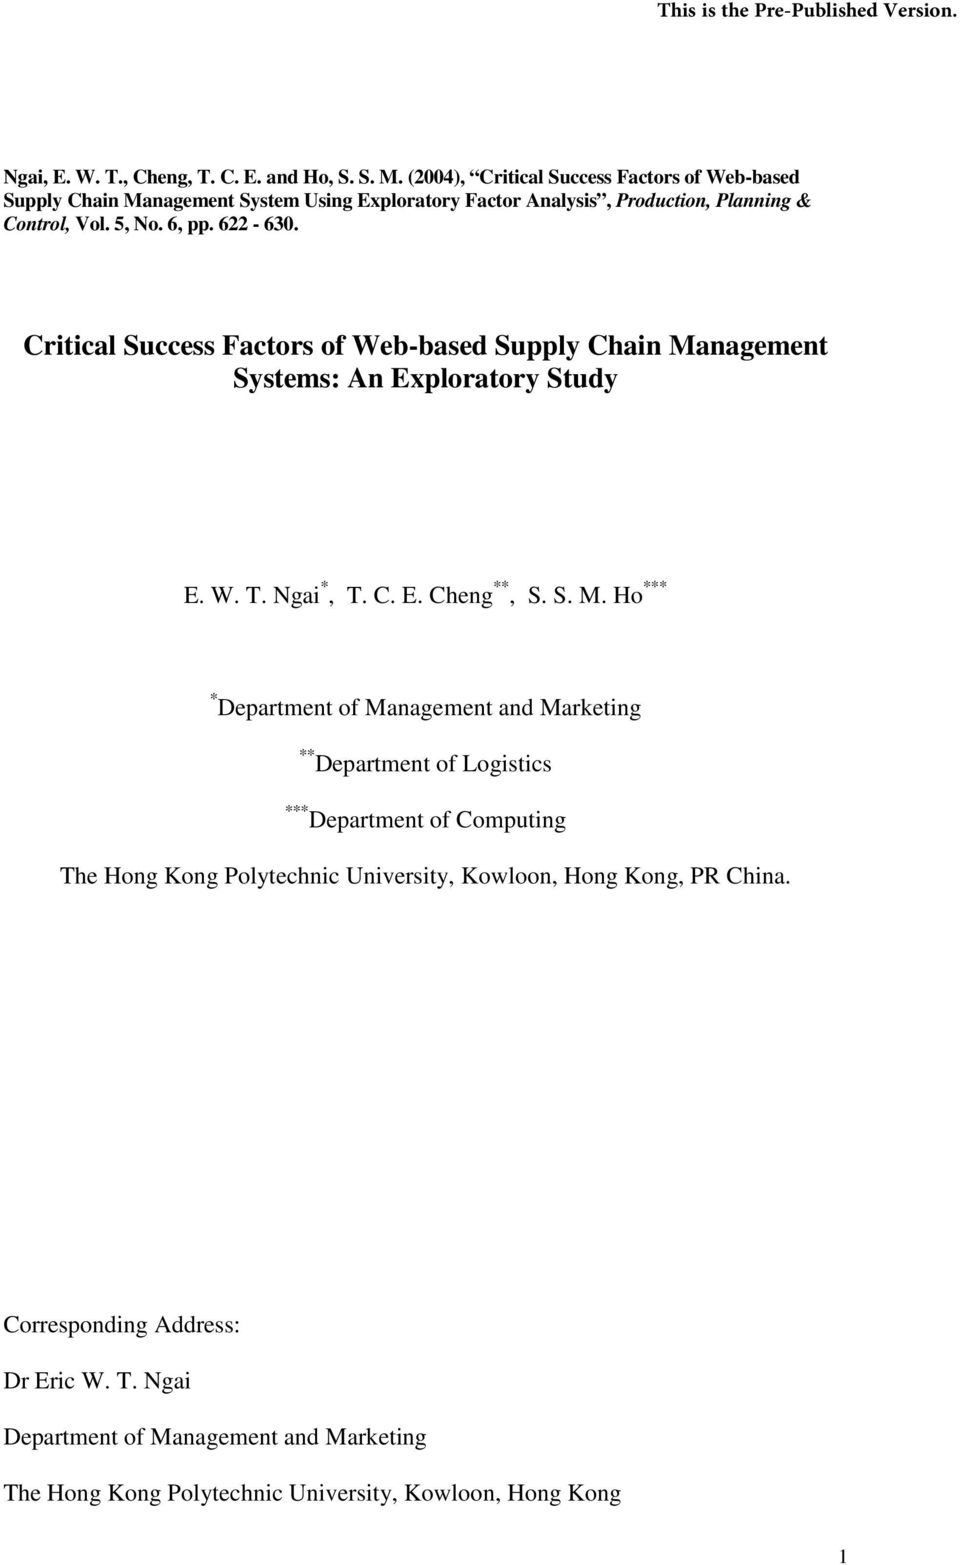 Critical Success Factors of Web-based Supply Chain Ma